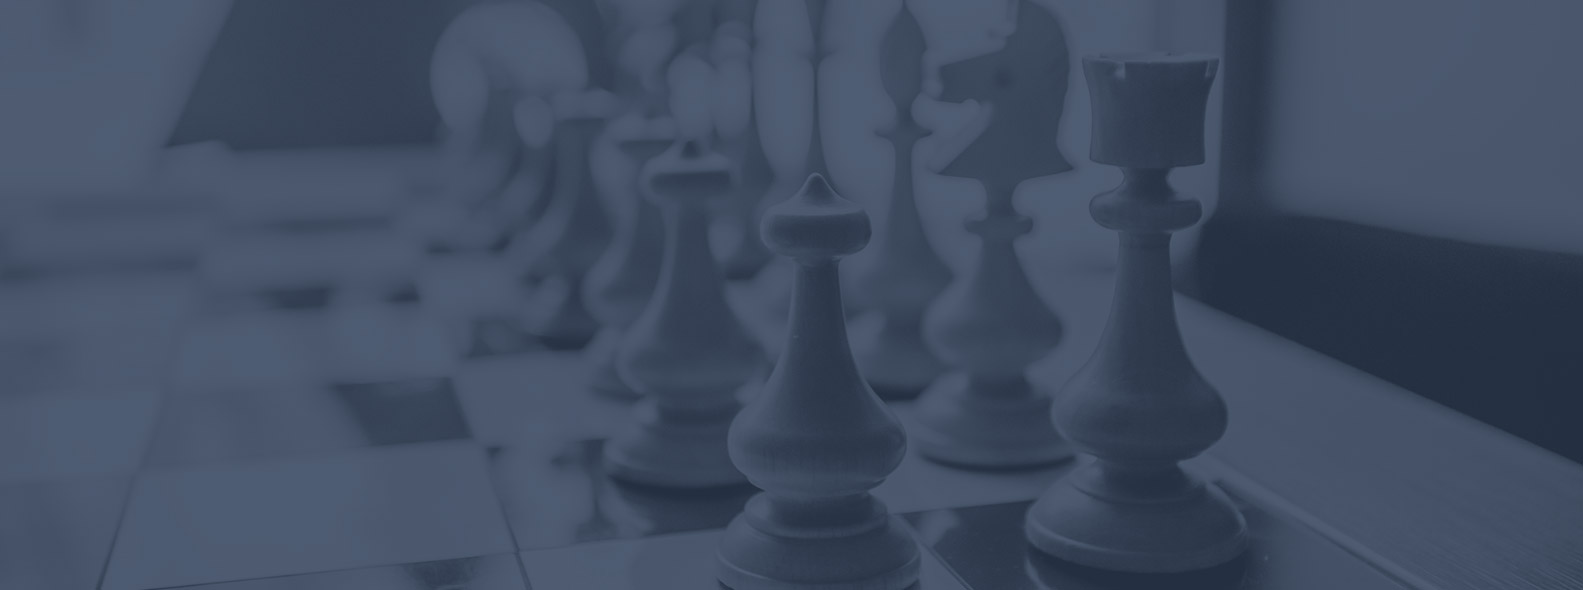 Chess pieces representing The Privacy Policy for Diligentiam